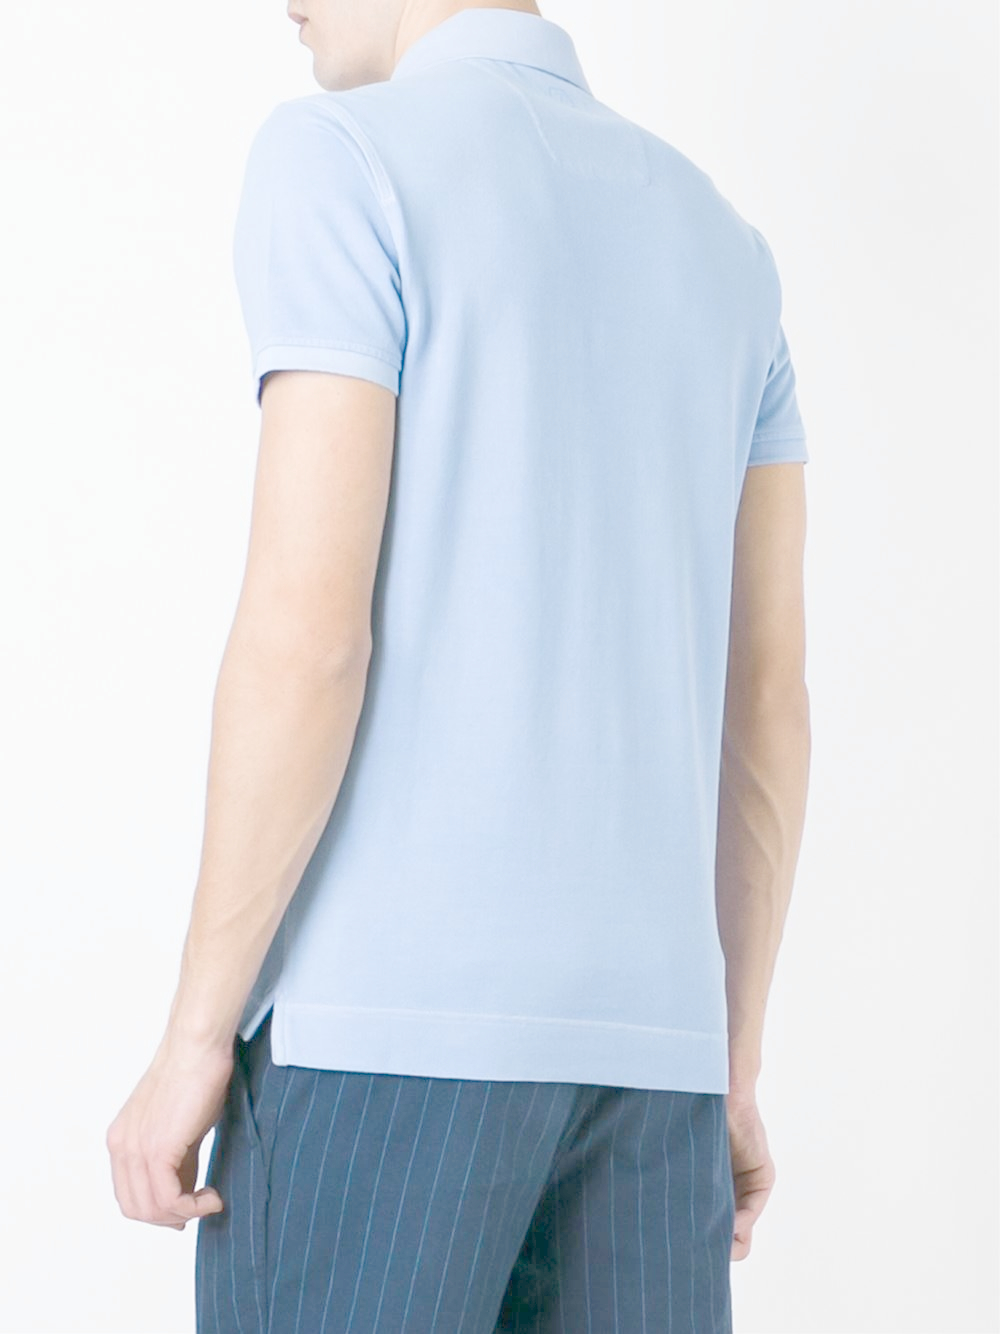 Z zegna chest pocket polo shirt in blue for men lyst for Men s polo shirts with chest pocket